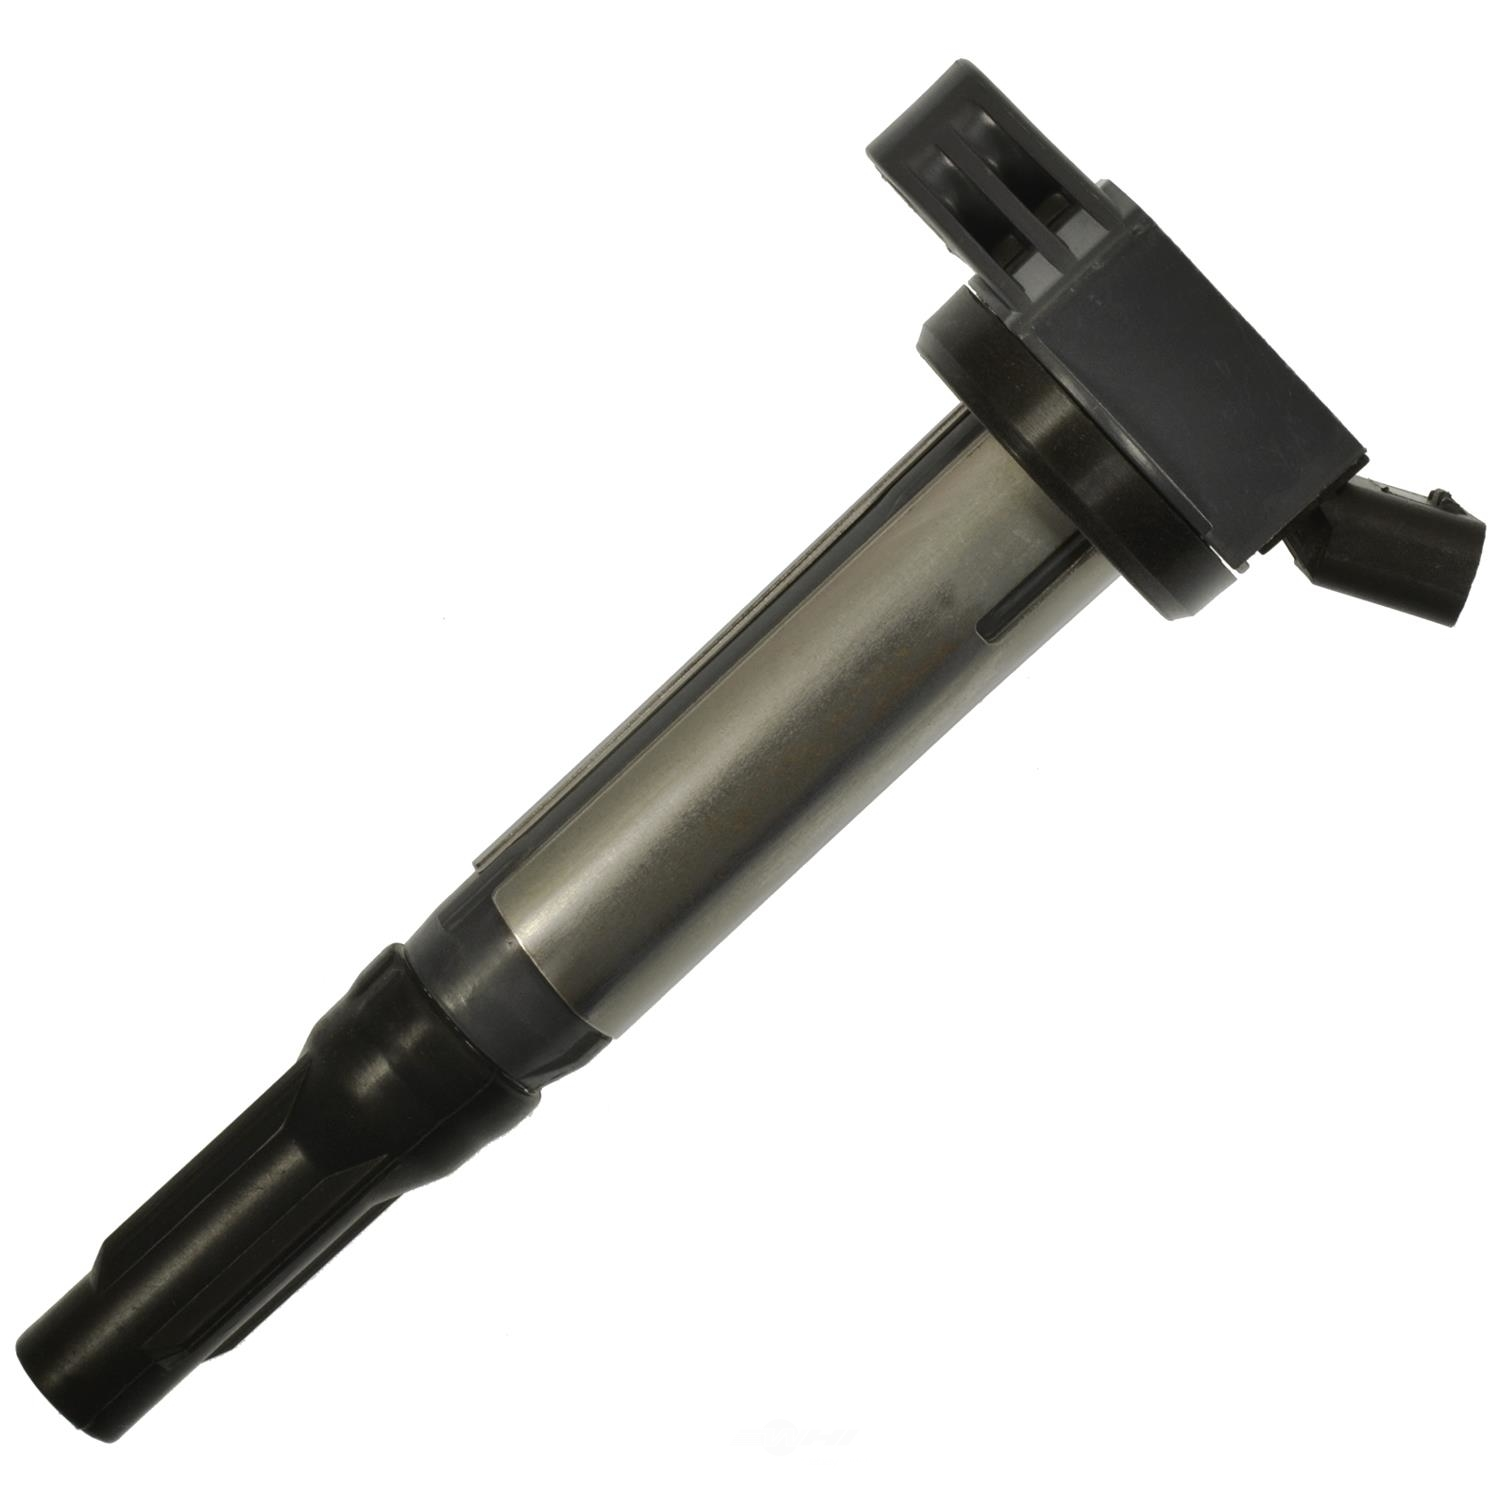 STANDARD T-SERIES - Ignition Coil - STT UF487T